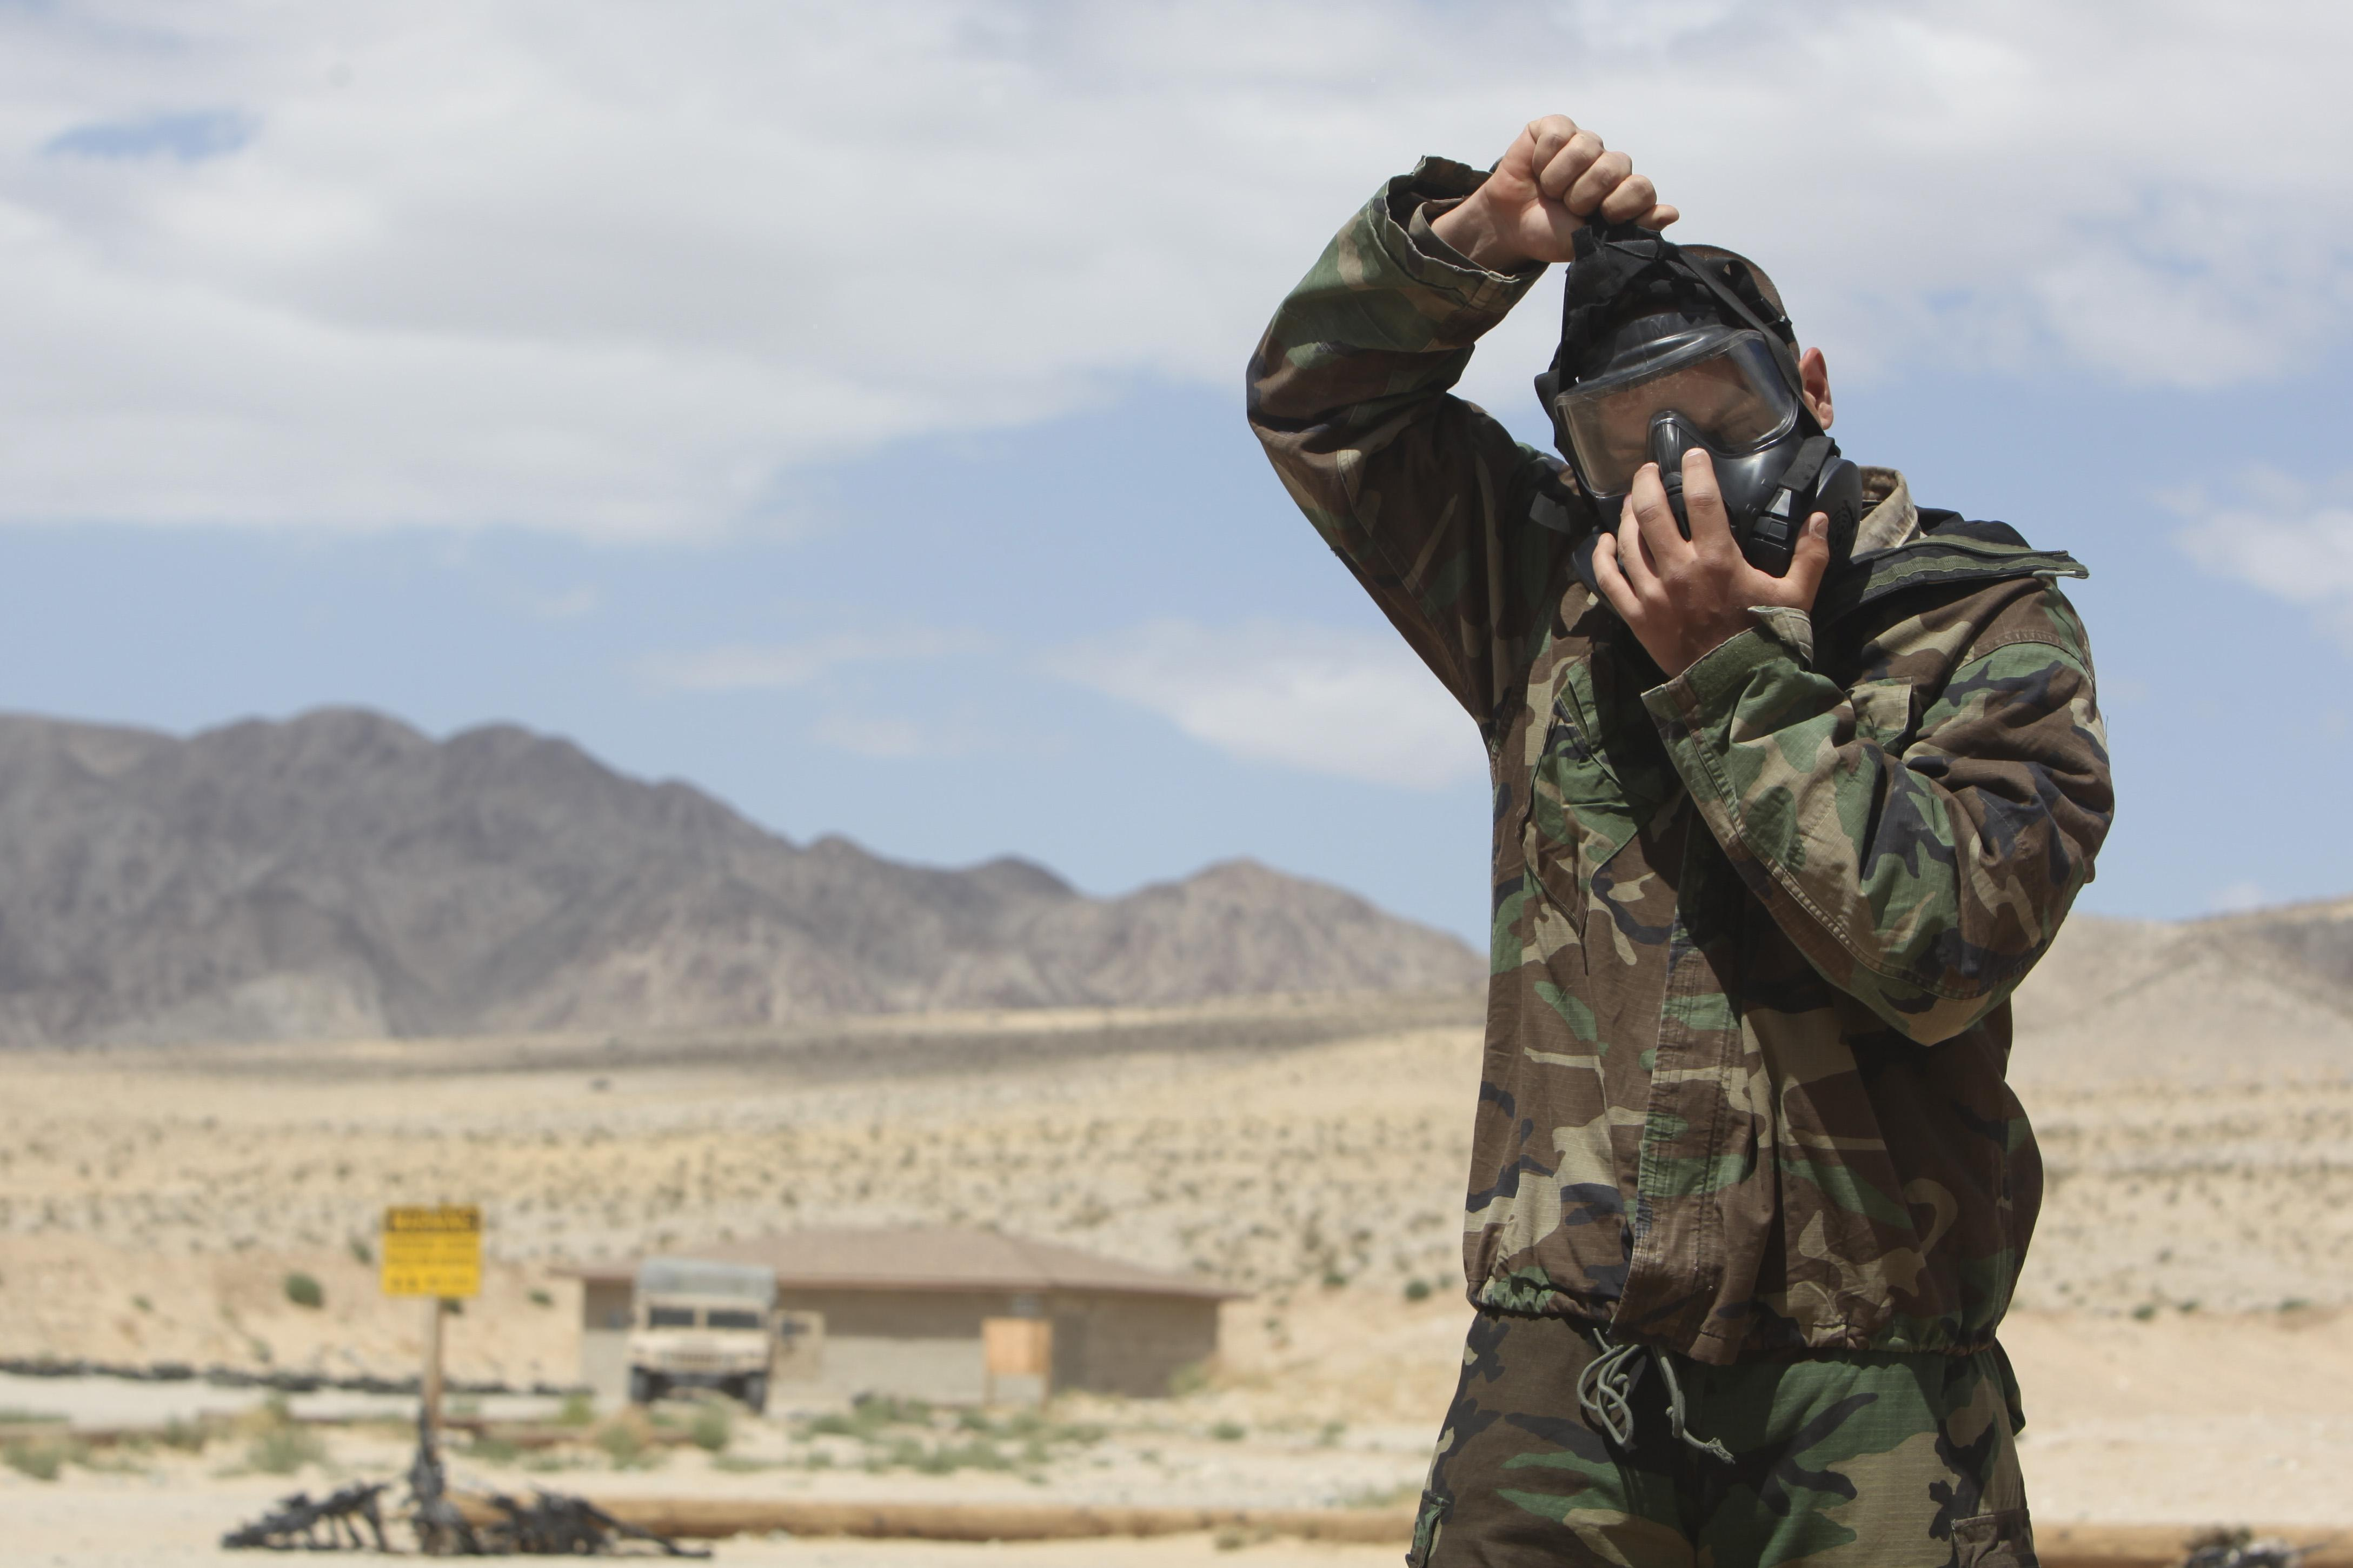 File:M50 gas mask and MOPP suit training 110525-M-KX613-038 jpg